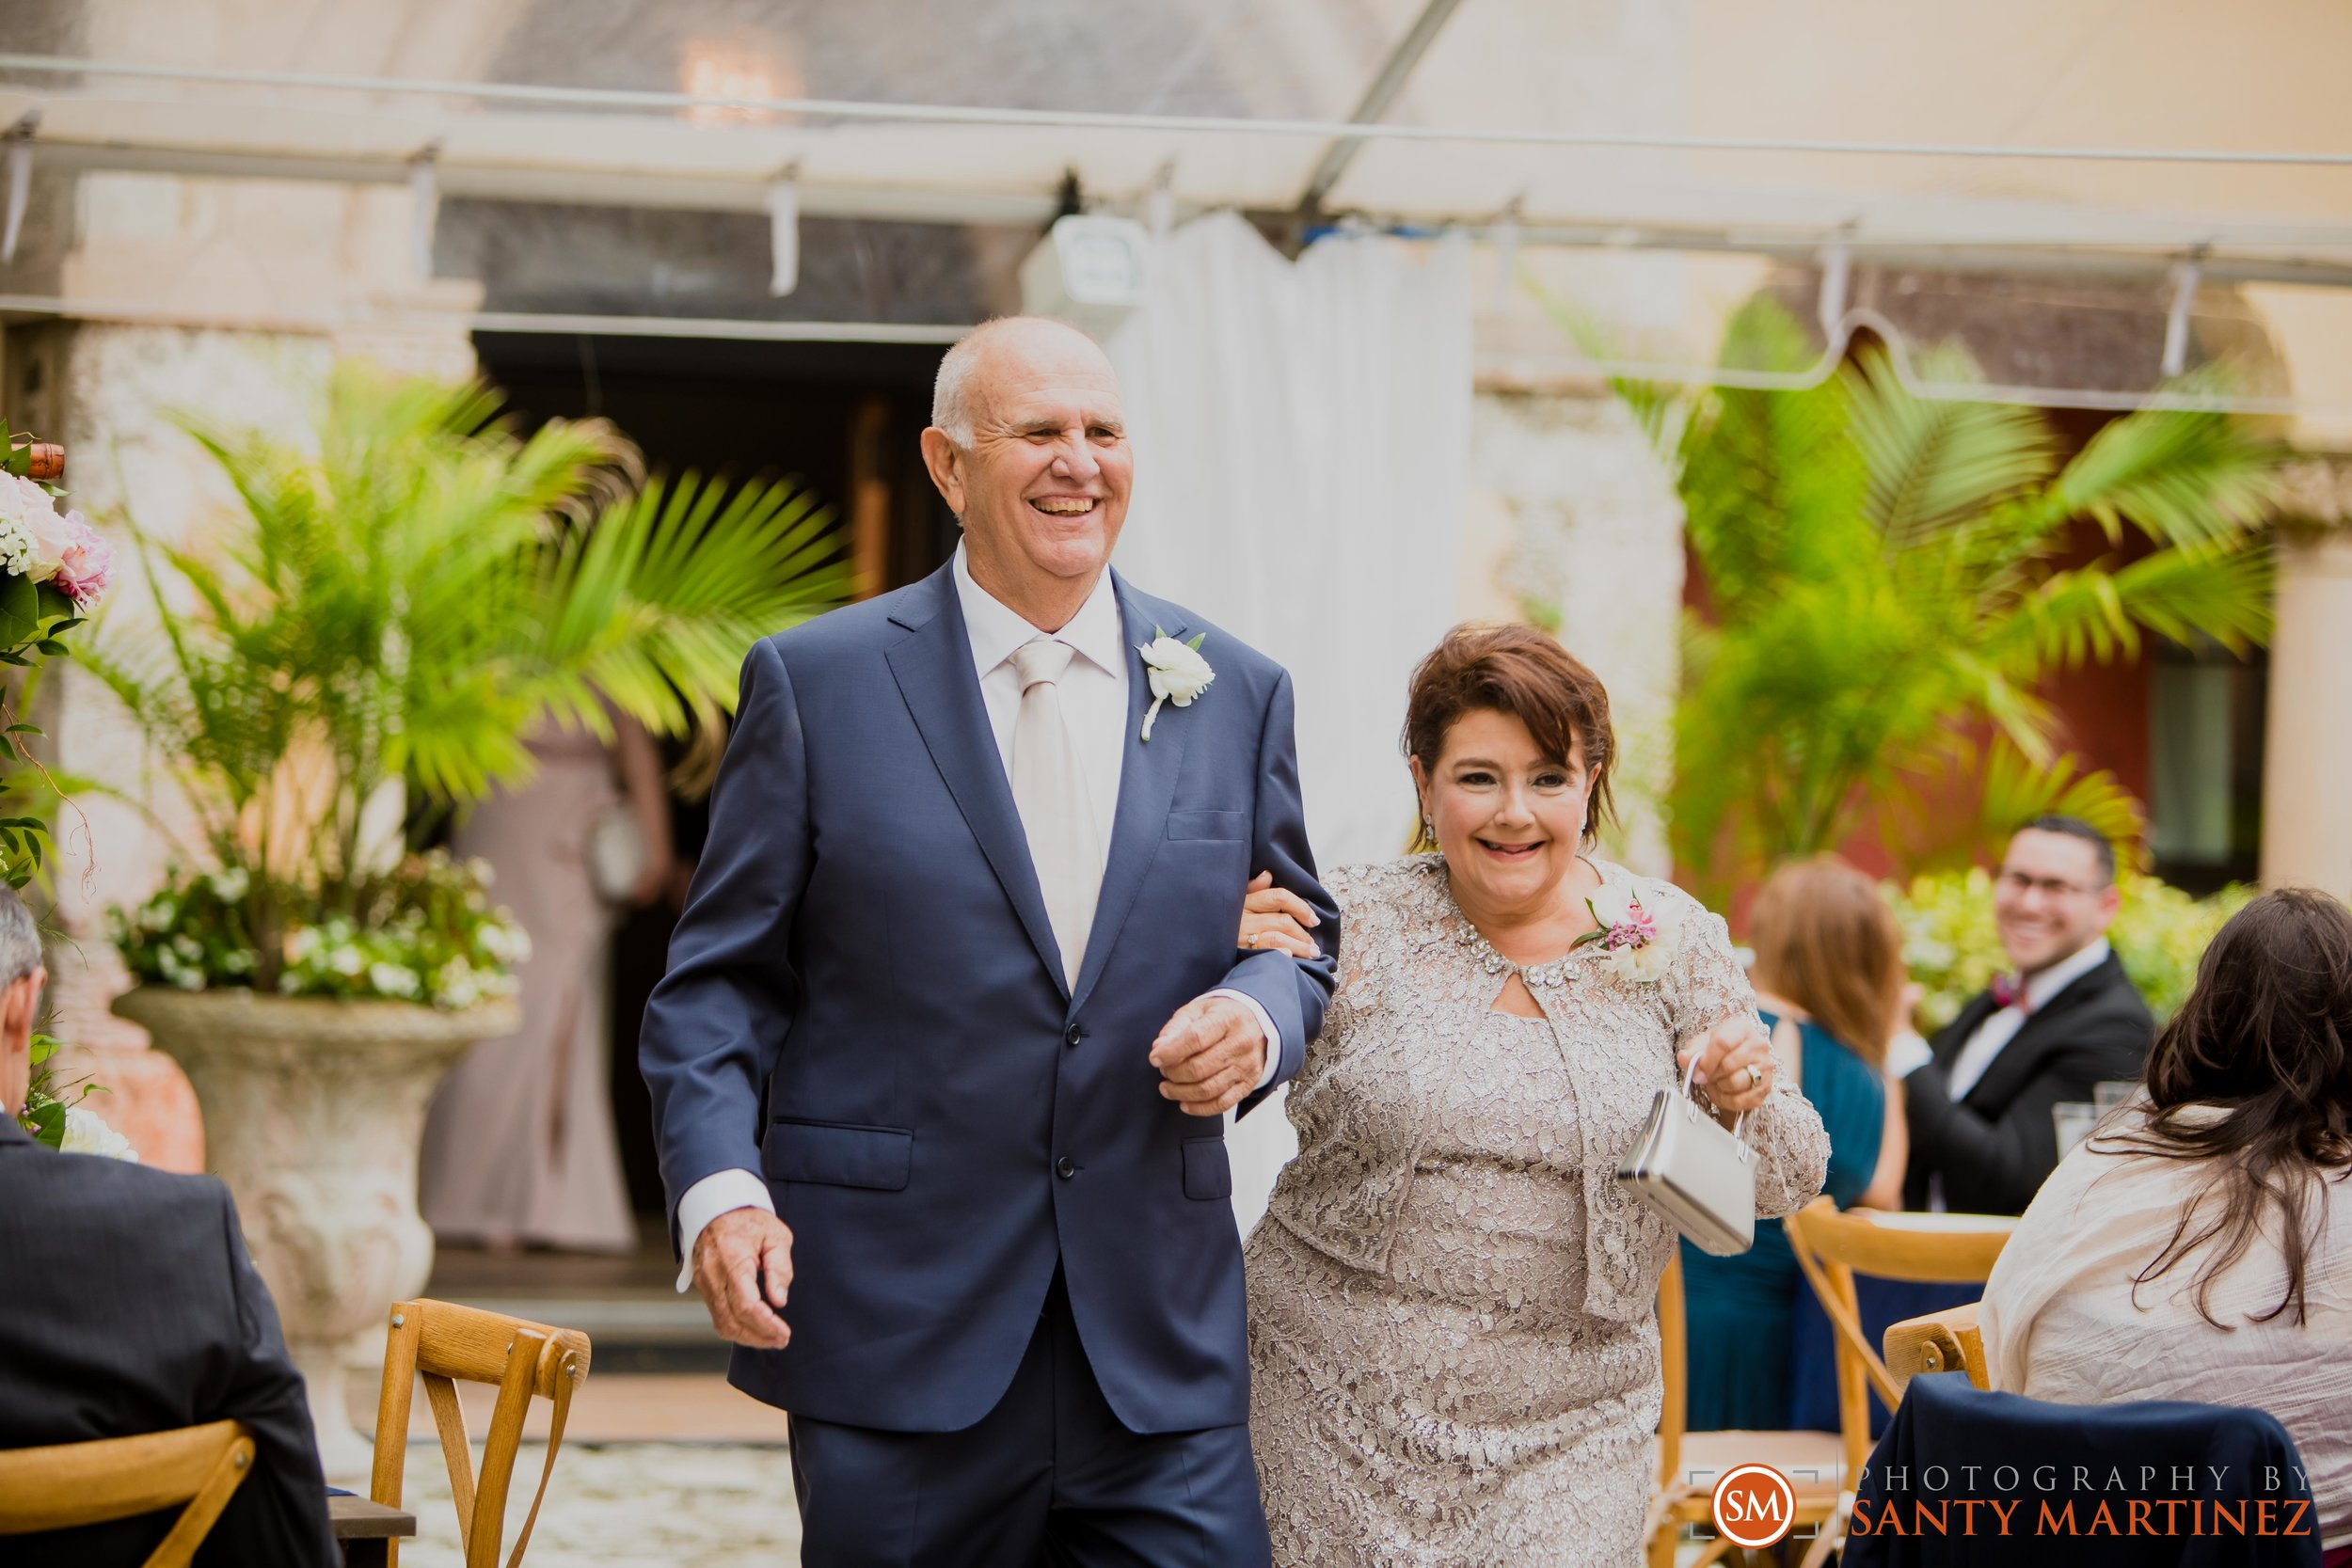 Deering Estate Wedding - Santy Martinez Photography-33.jpg